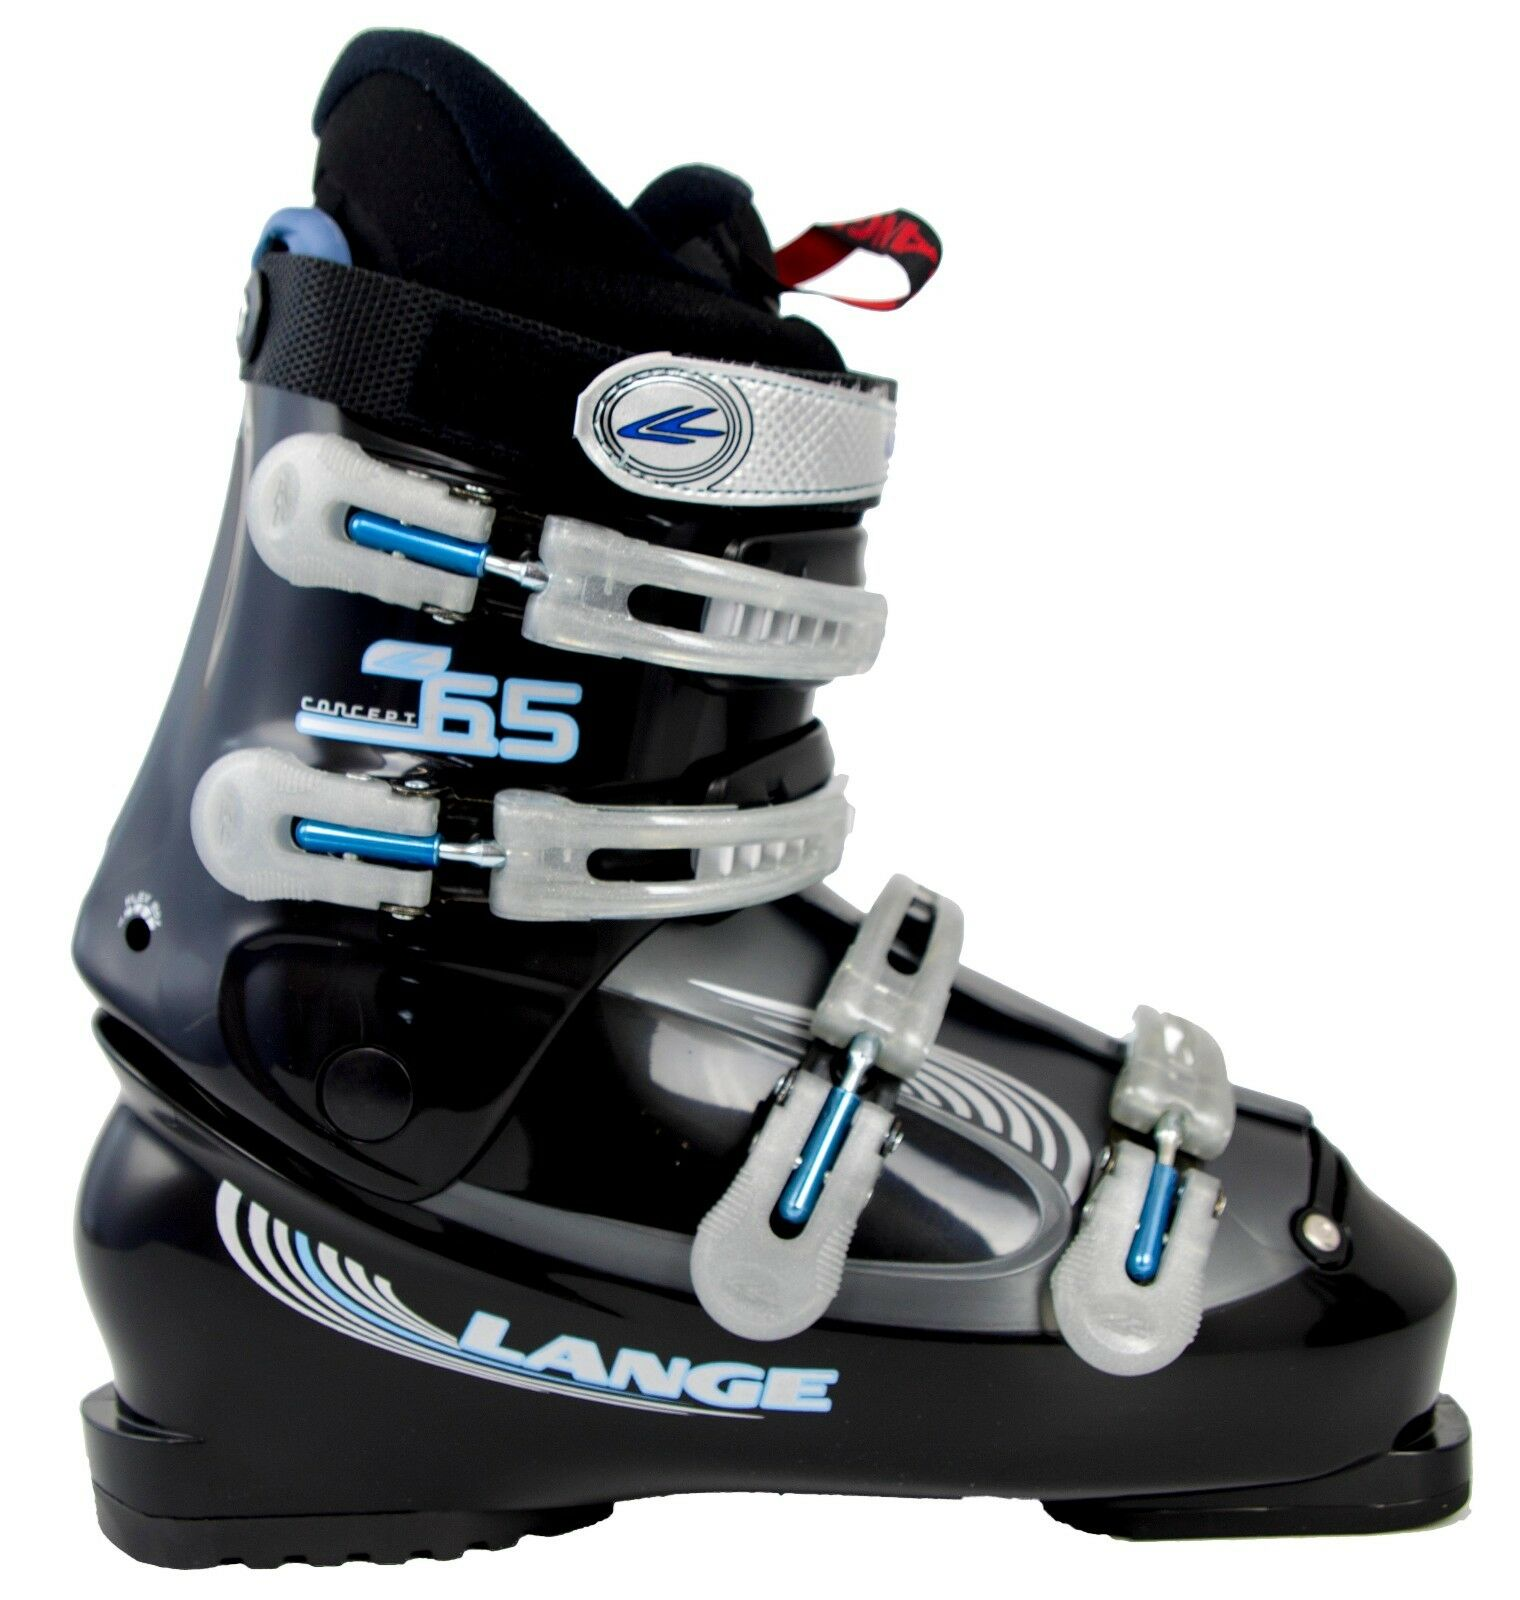 NEW  350 Womens Lange Concept  65 Ski Boots Ladies Size USA 7.5 8 9.5  outlet